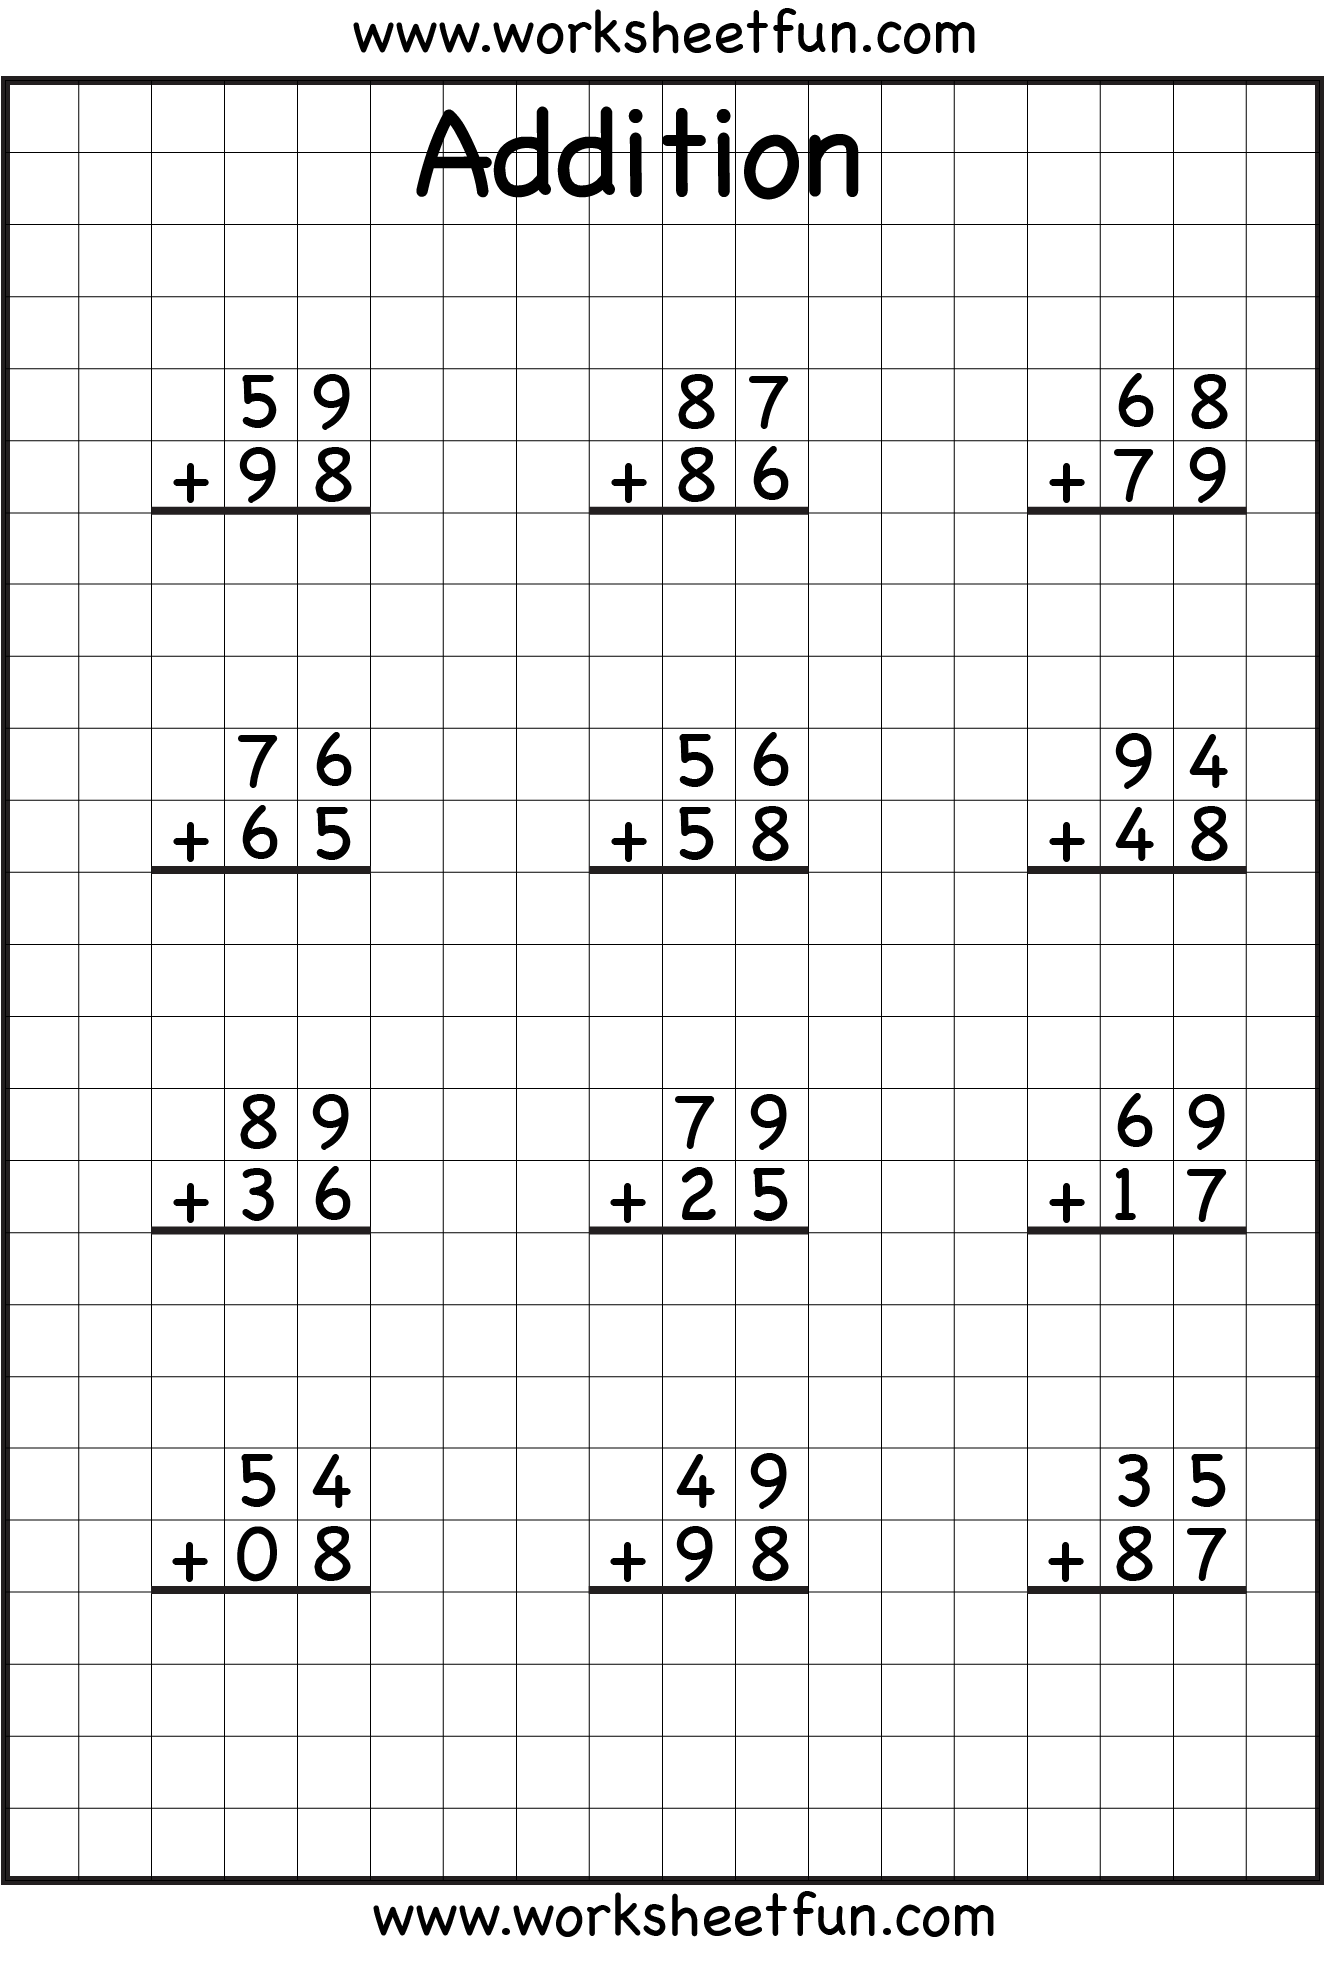 Two Digit Subtraction Without Regrouping Worksheets – Subtraction Without Regrouping Worksheet